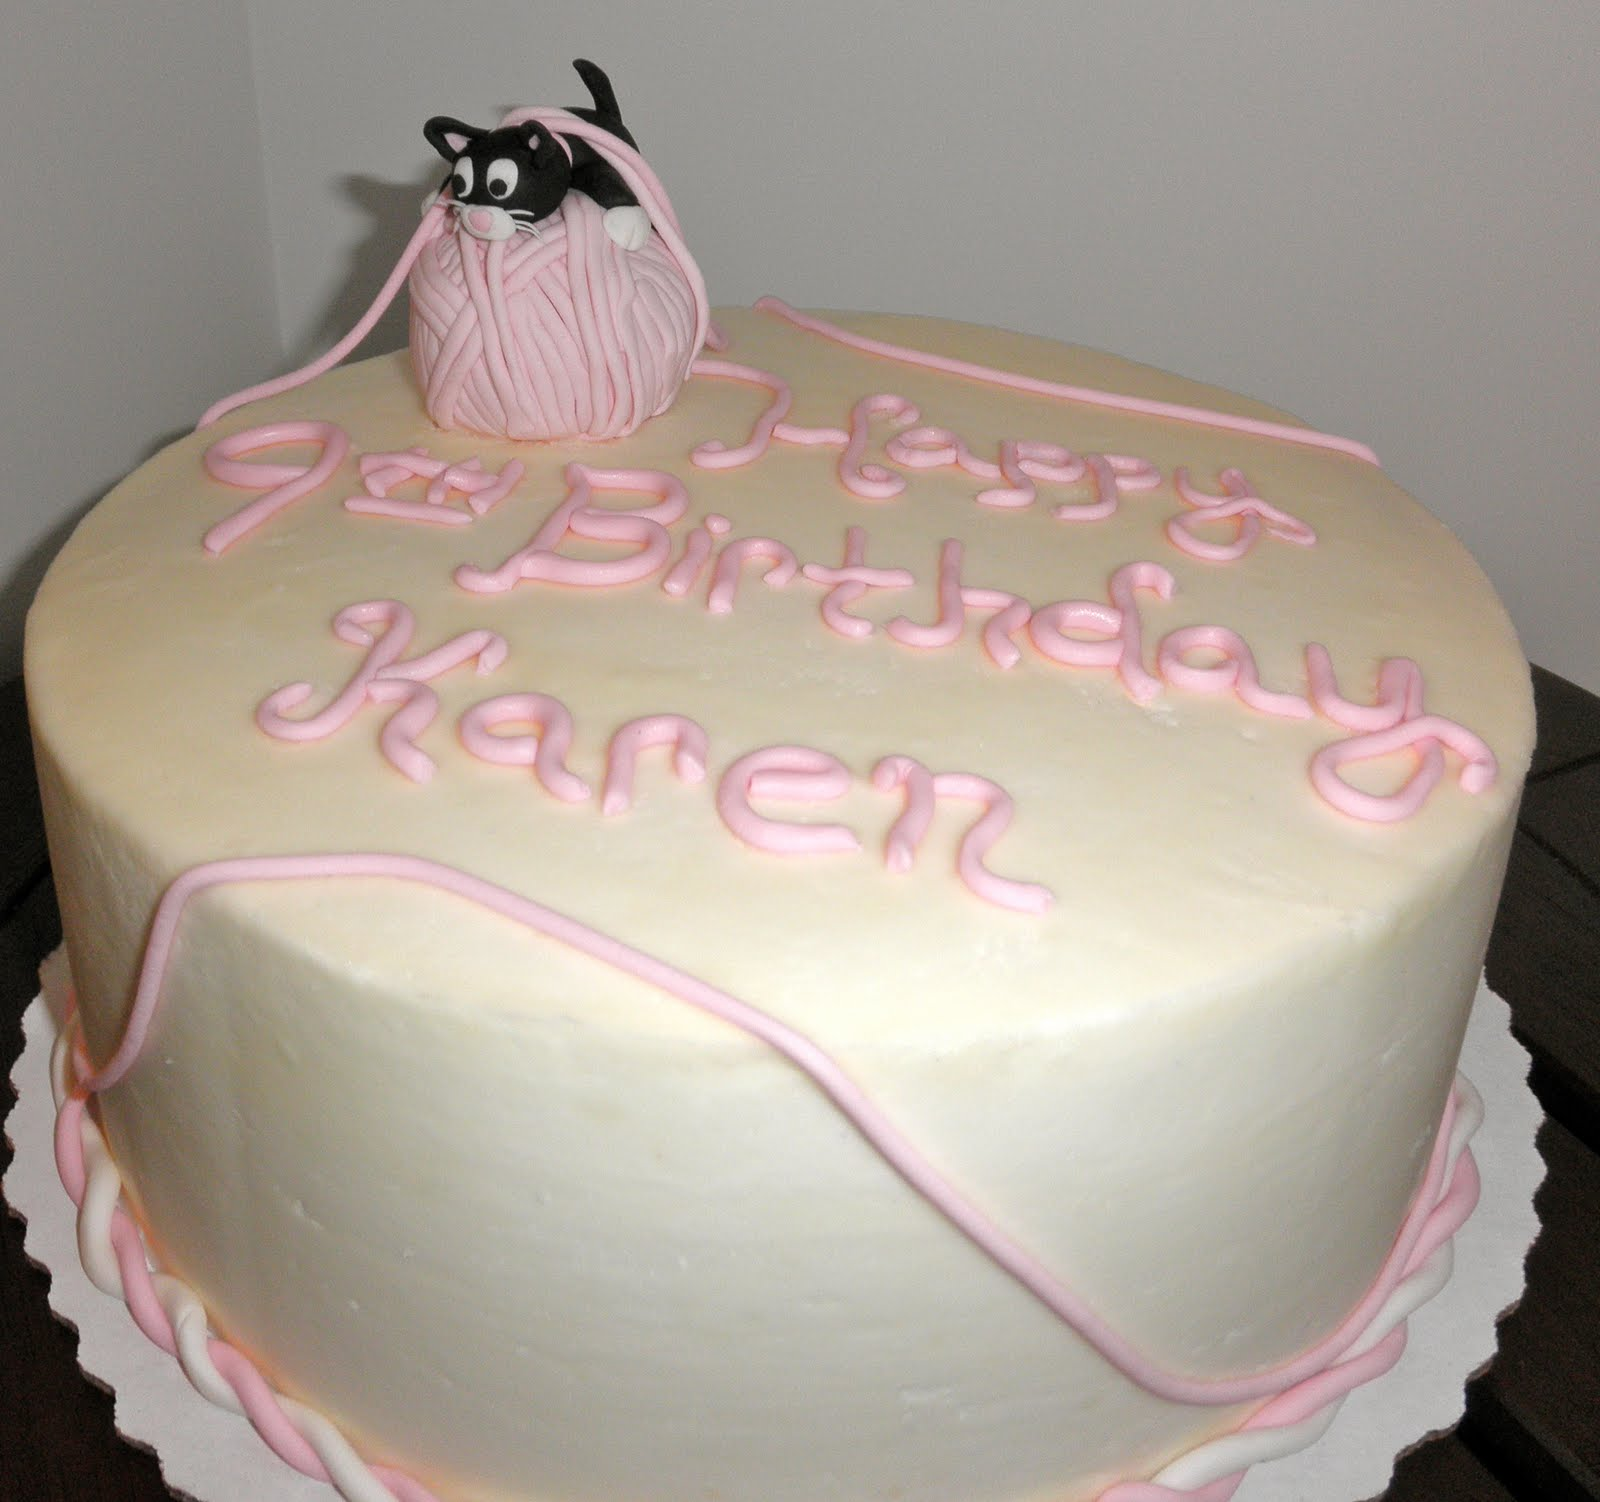 Sweet K Cake Design : Sweet T s Cake Design: Black & White Cat on Pink Ball of ...